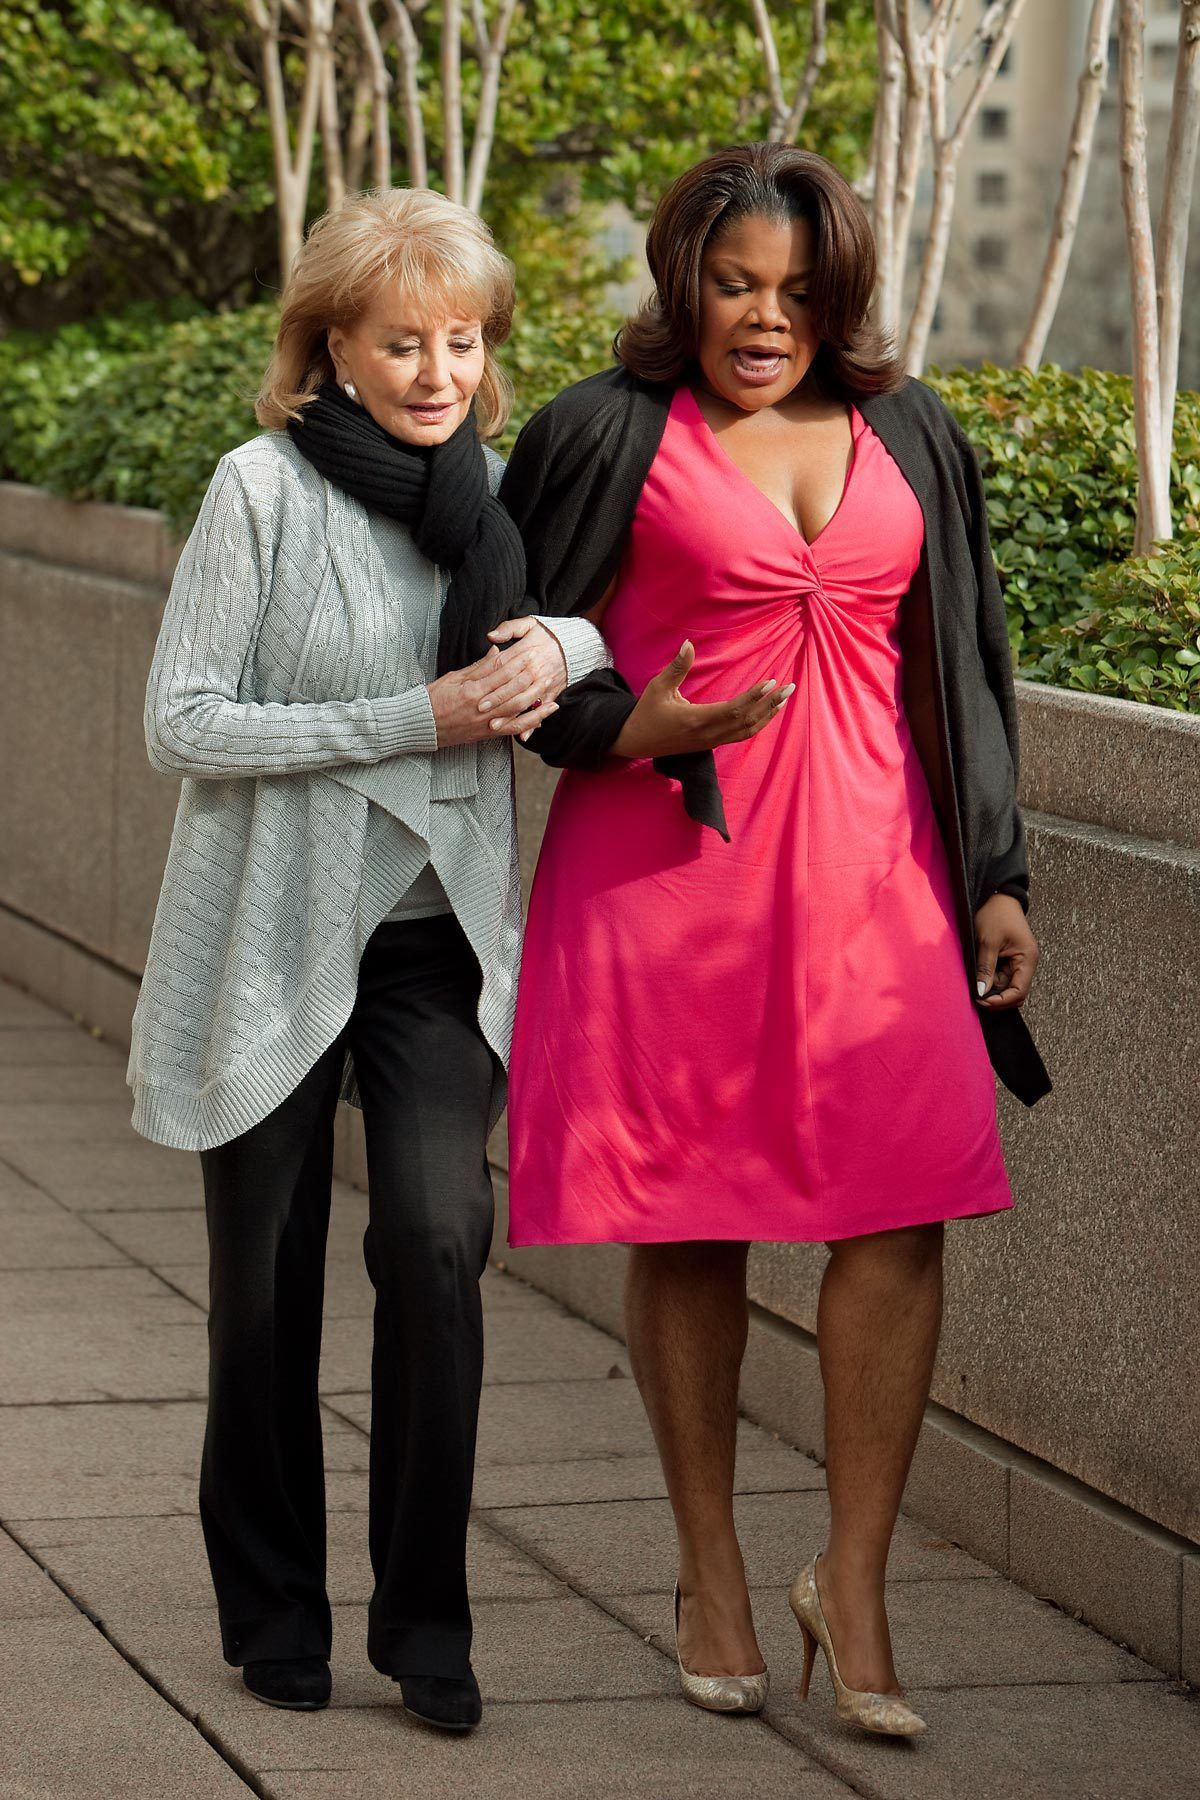 Barbara Walters Oscar interview with Monique- Walking outside